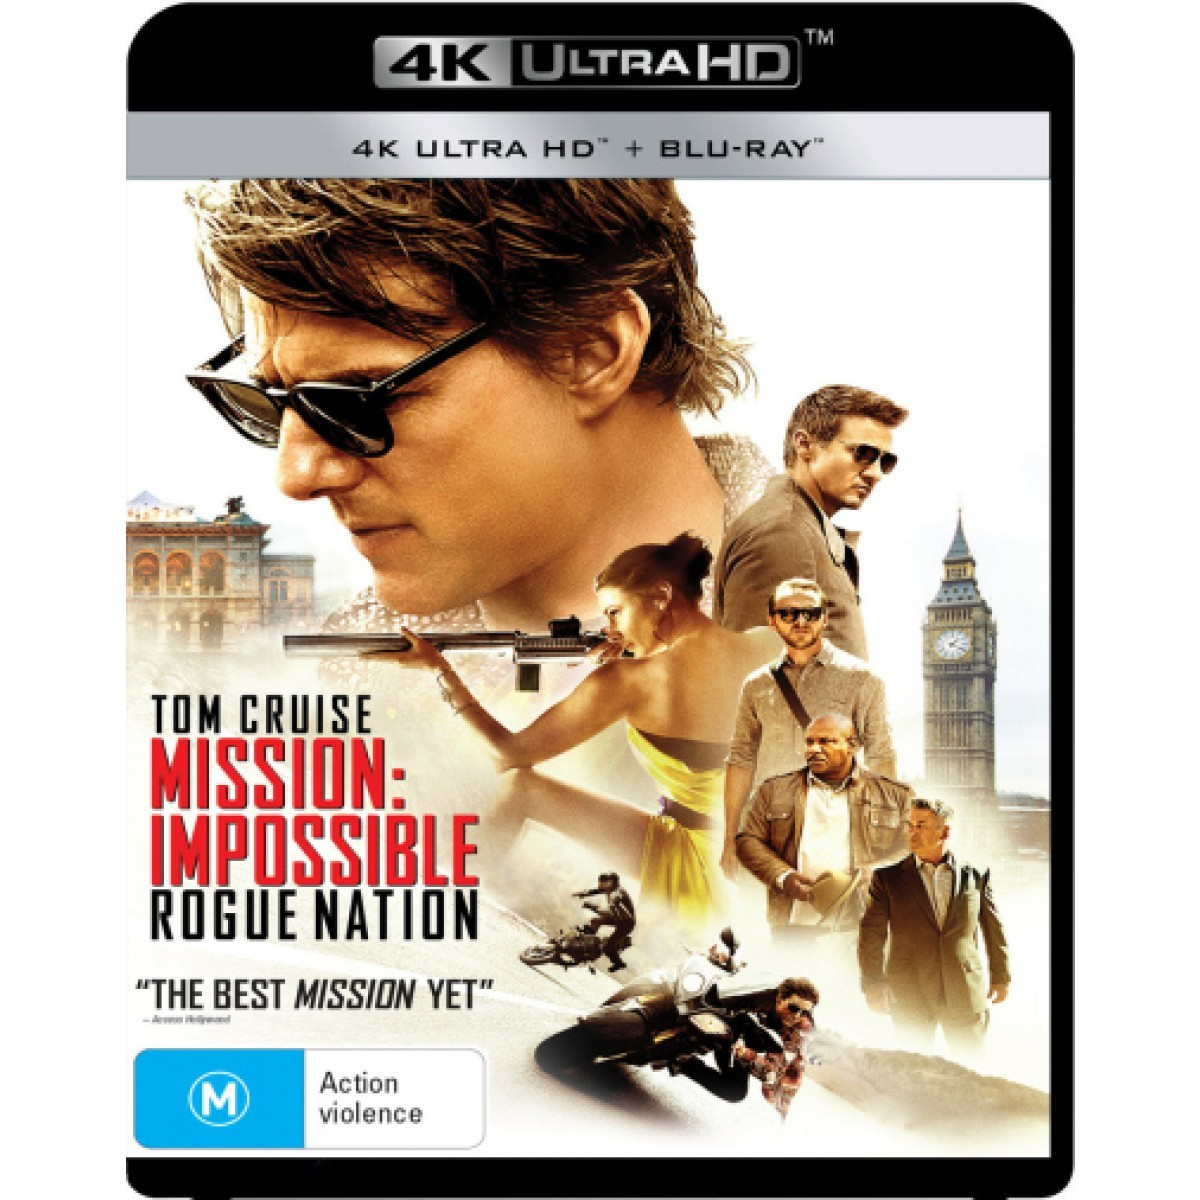 Mission: Impossible 5 - Rogue Nation on UHD Blu-ray image